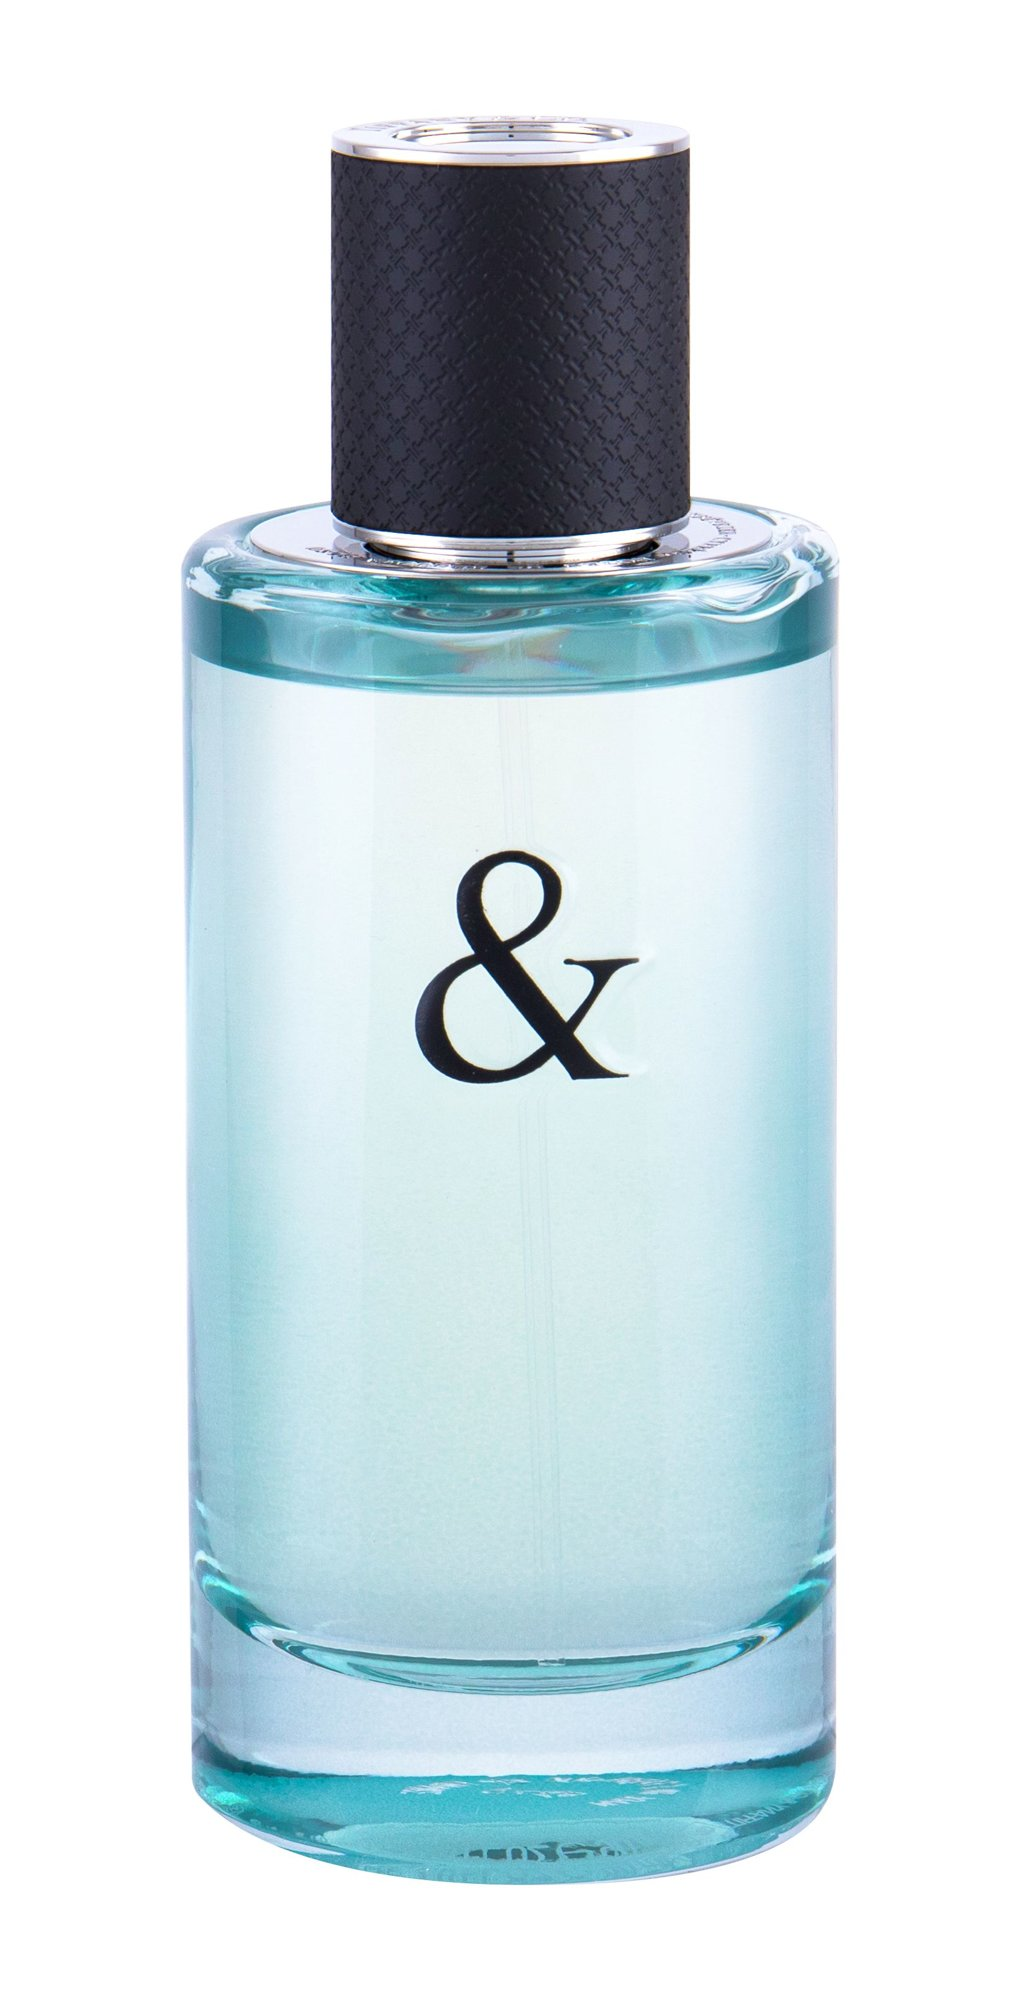 Tiffany & Co. Tiffany & Love Eau de Toilette 90ml